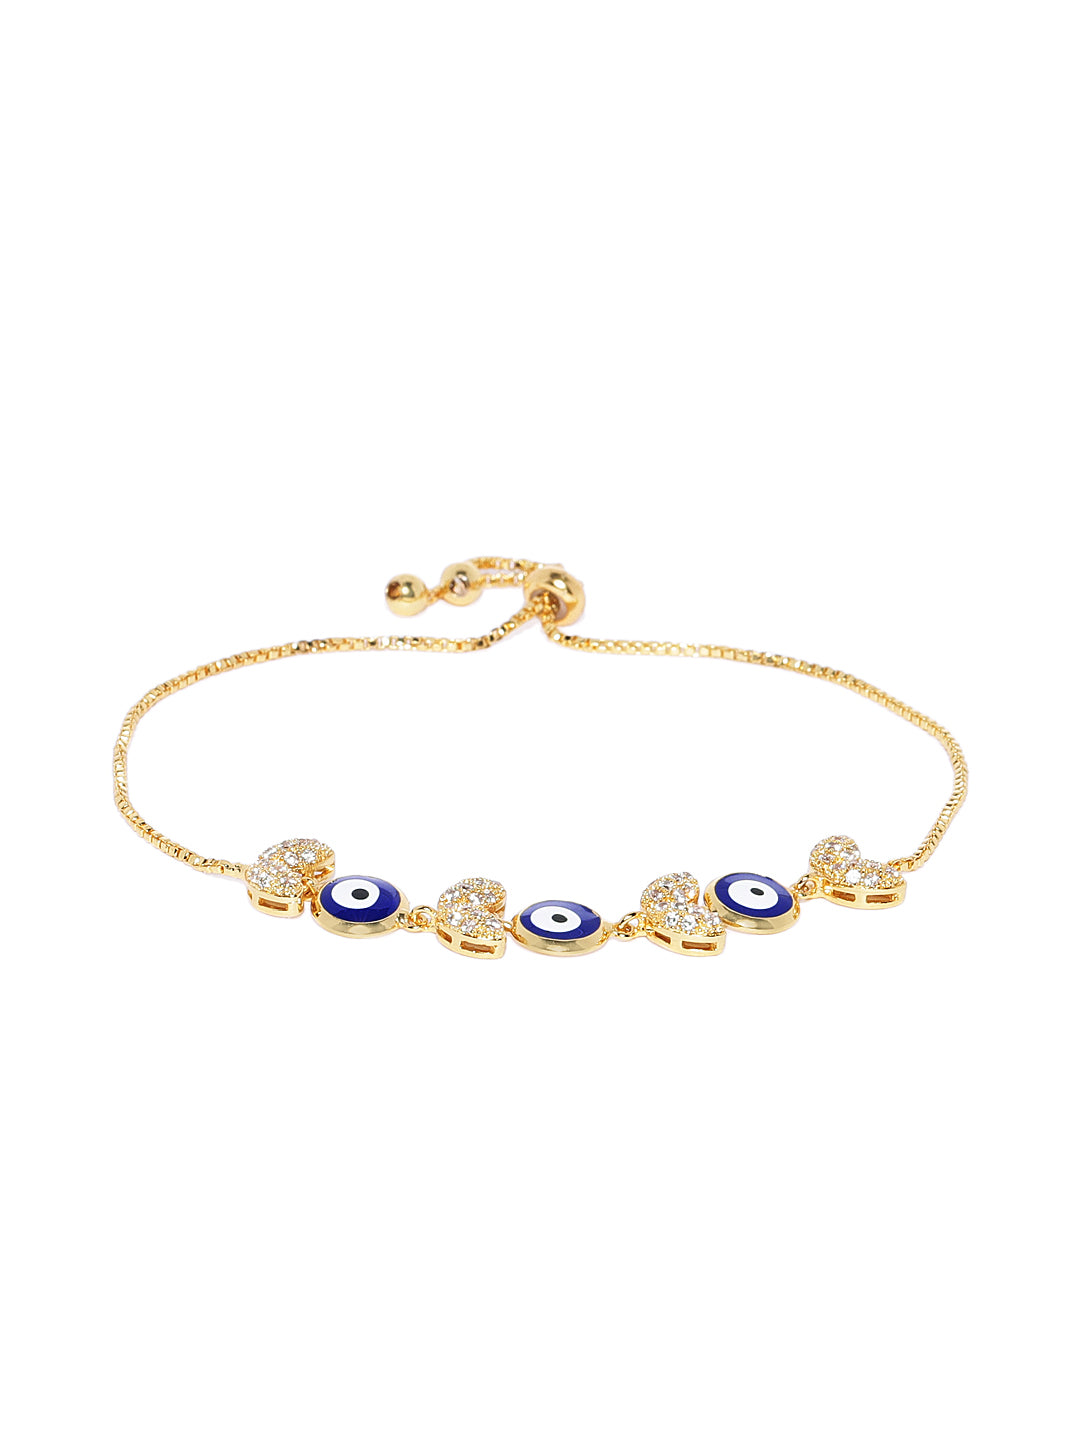 18K Gold Plated Evil Eye Charm Bracelet - ChicMela